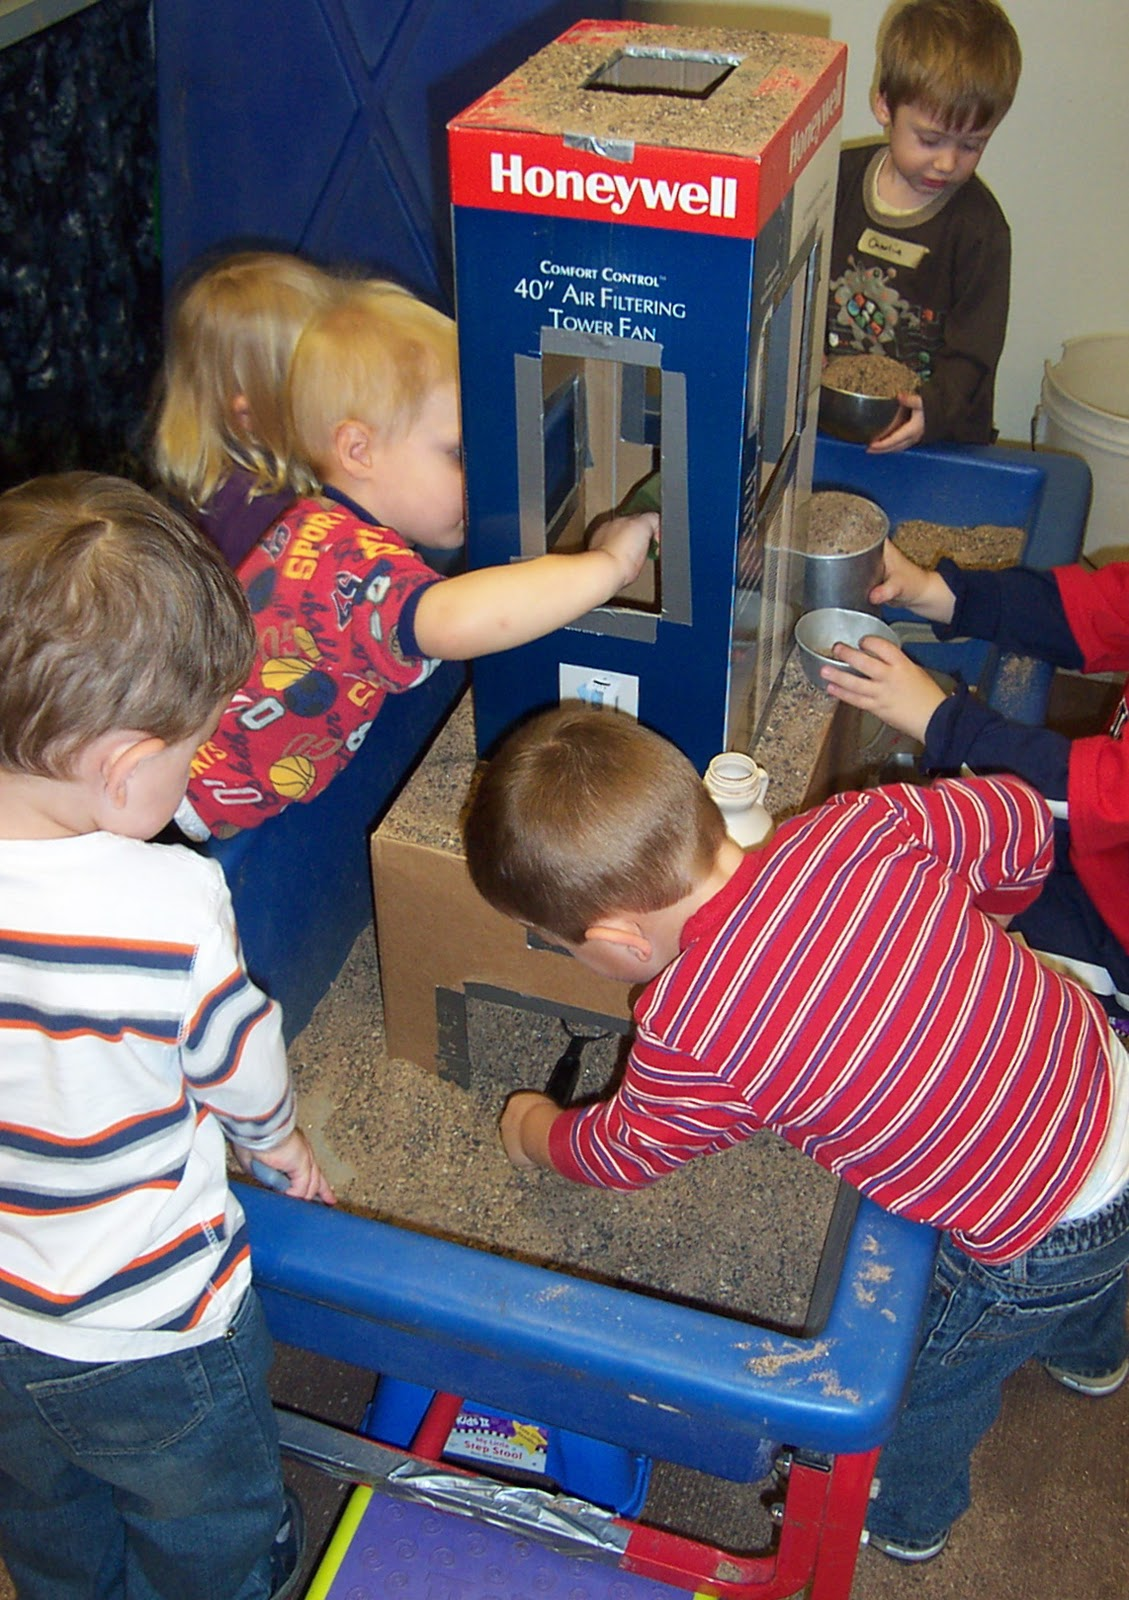 My First Room Toddler 3 Piece Room In A Box: SAND AND WATER TABLES: SELF-REGULATION AT THE SENSORY TABLE